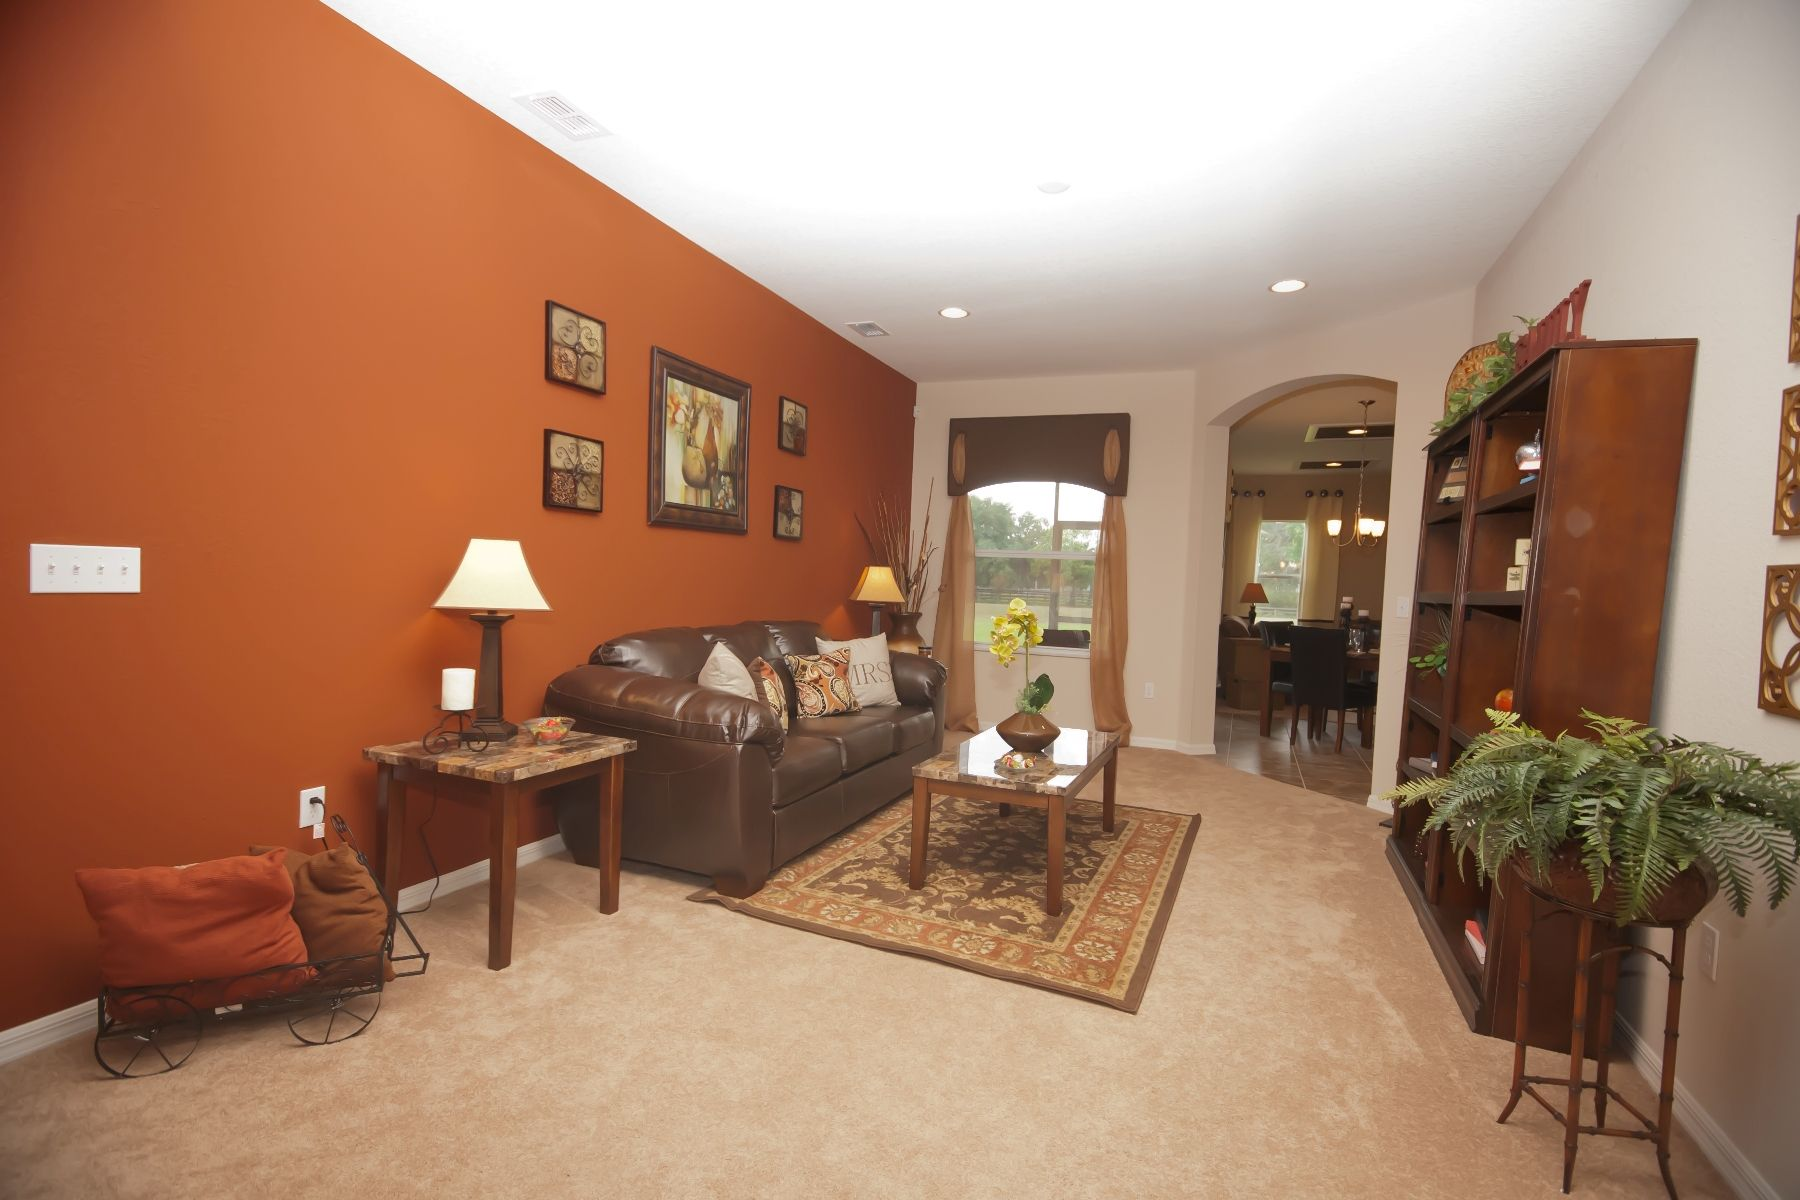 Copper Accent Wall Burnt Orange Accent Wall Perfectly Pairs With The Neutral